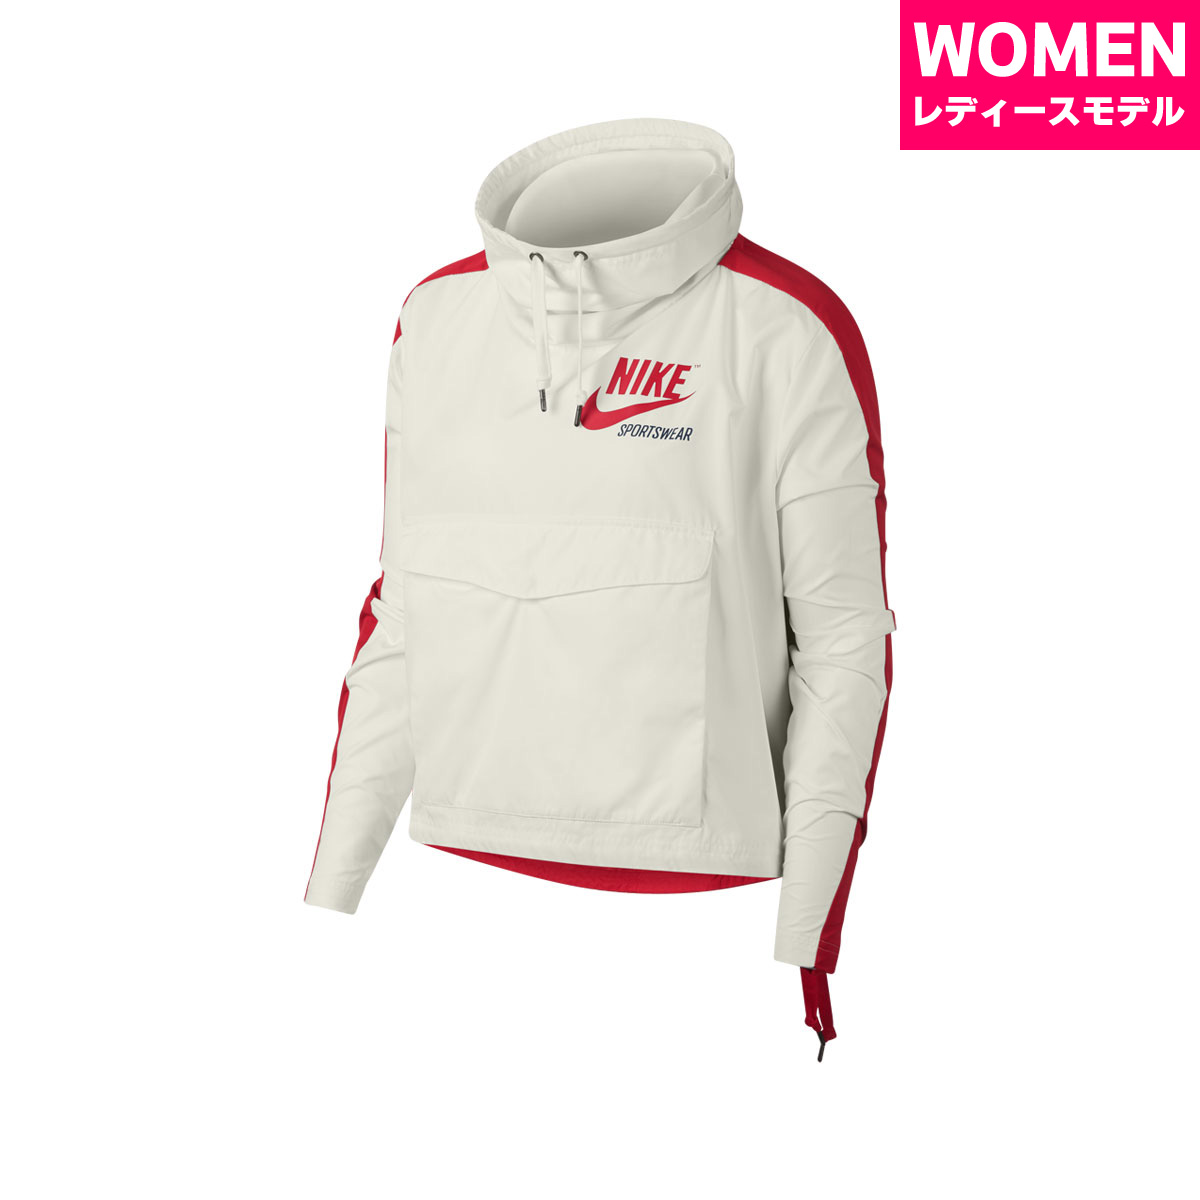 d2bd09a31e01 NIKE AS W NSW JKT PO ARCHIVE (Nike women archive pullover jacket)  SAIL UNIVERSITY RED 18SP-I